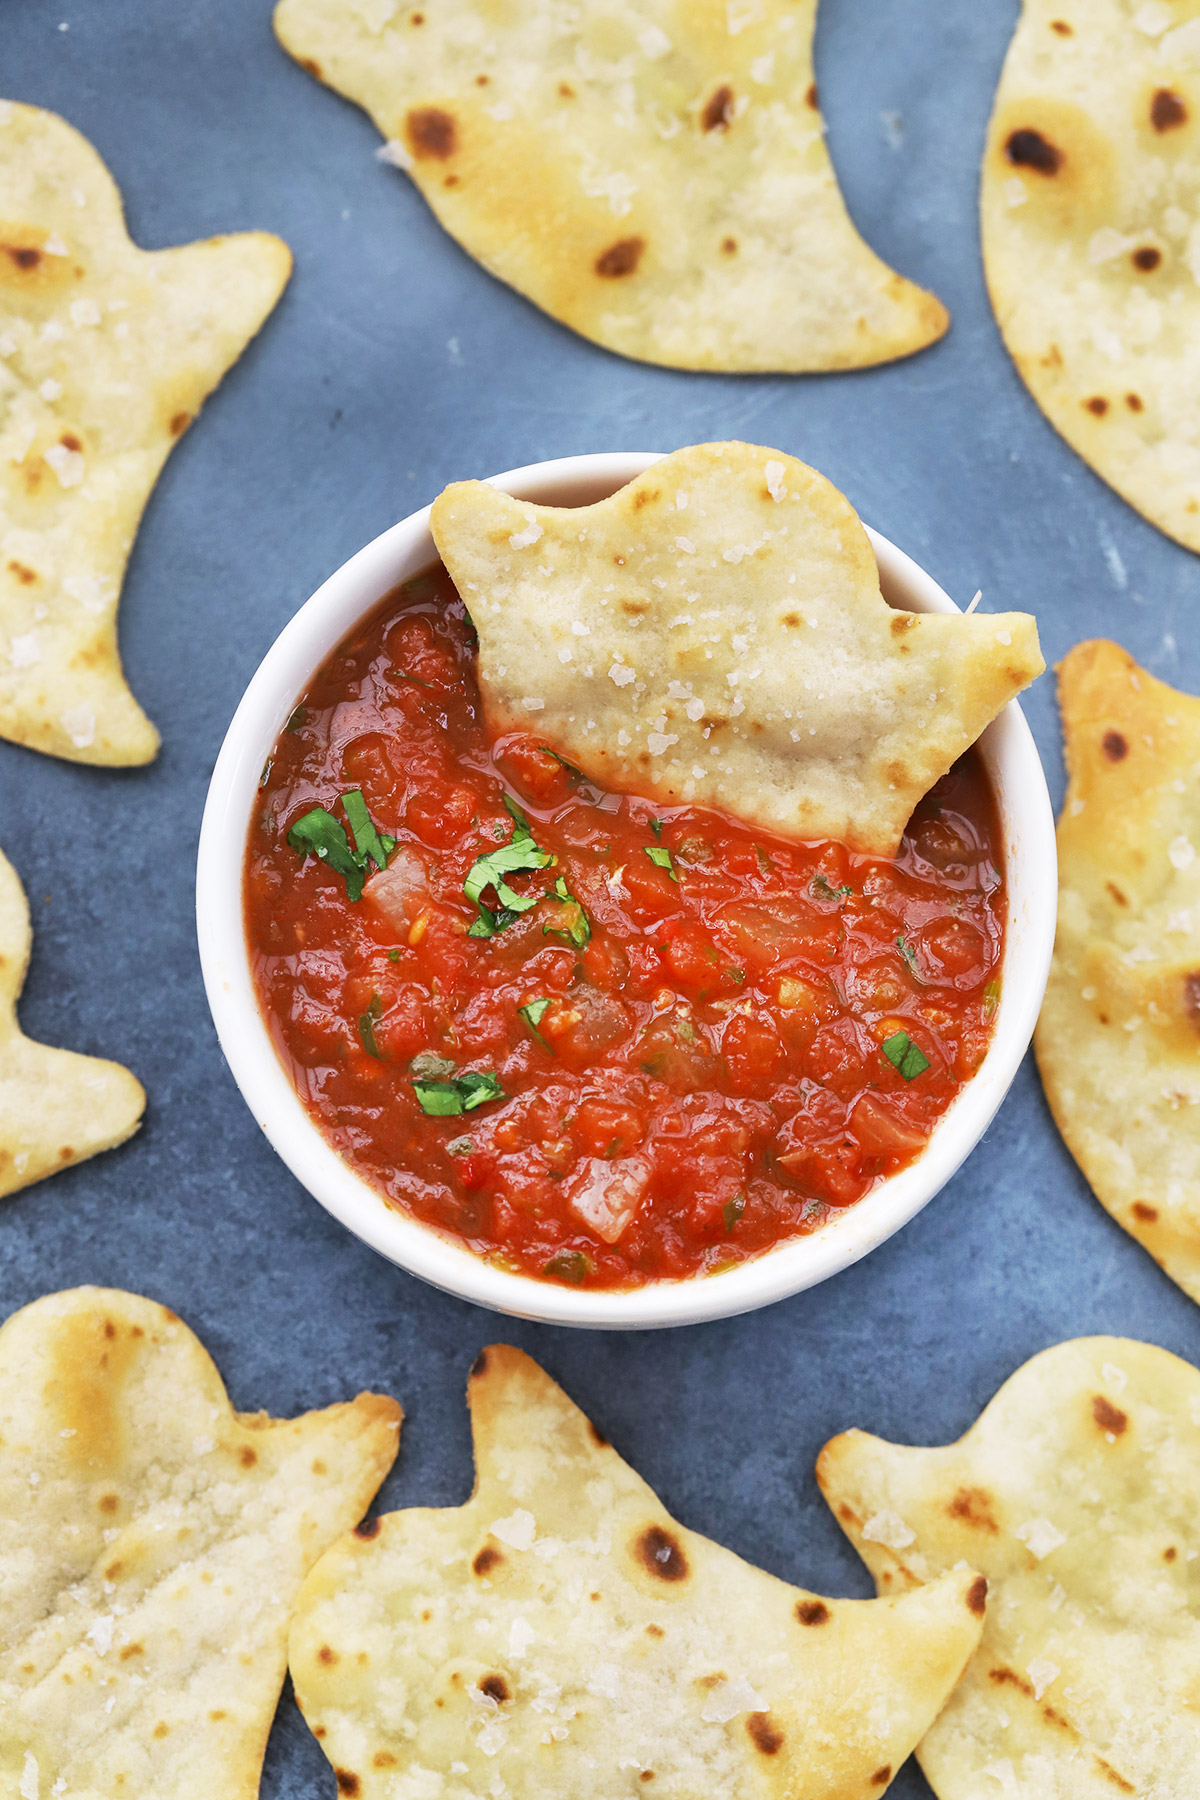 A close view of Baked Halloween Ghost Chips on a black background with a bowl of red salsa